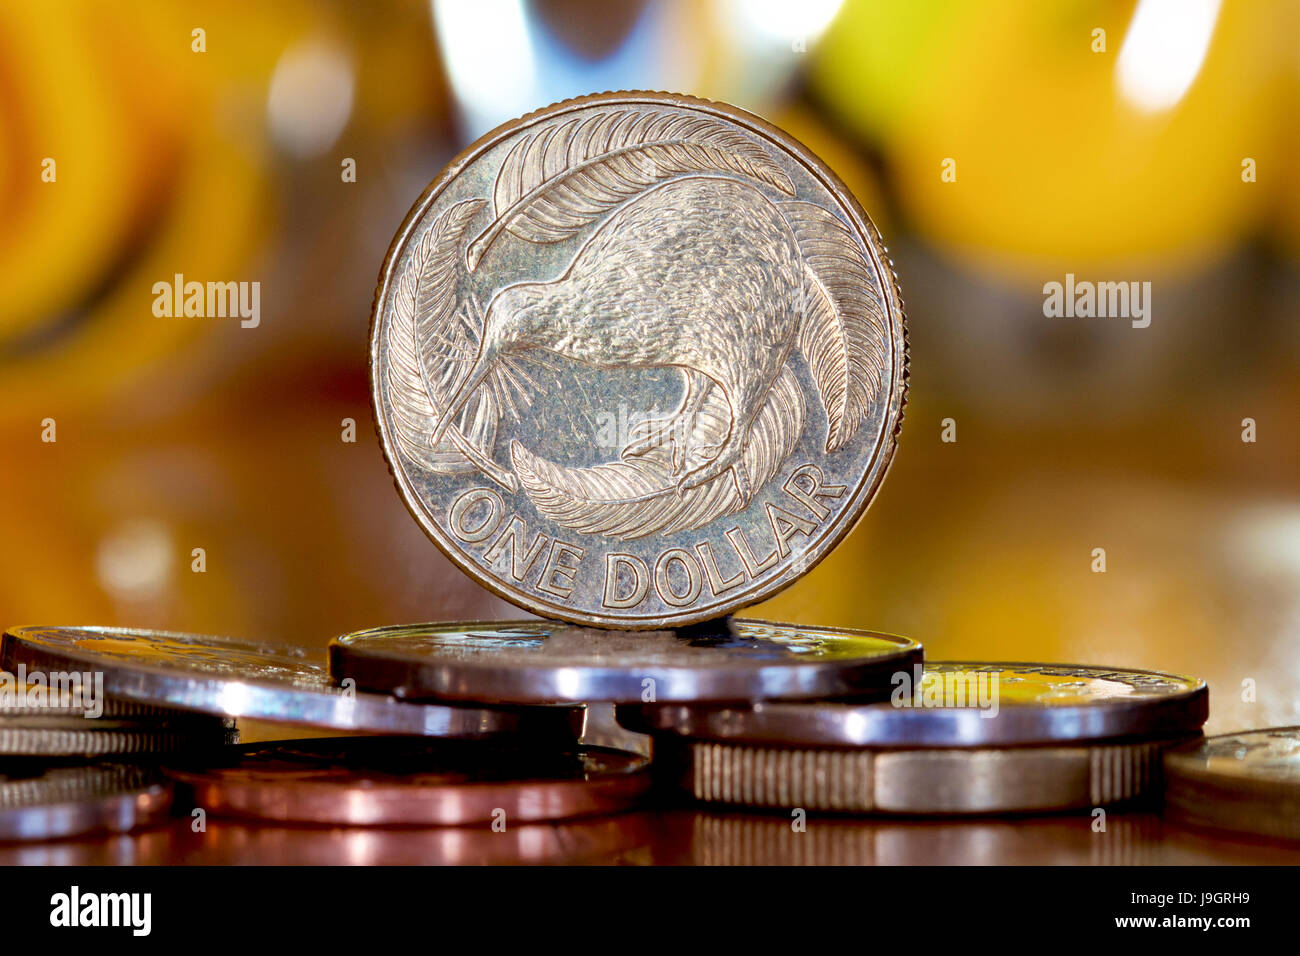 New Zealand dollar on a bed of coins. - Stock Image